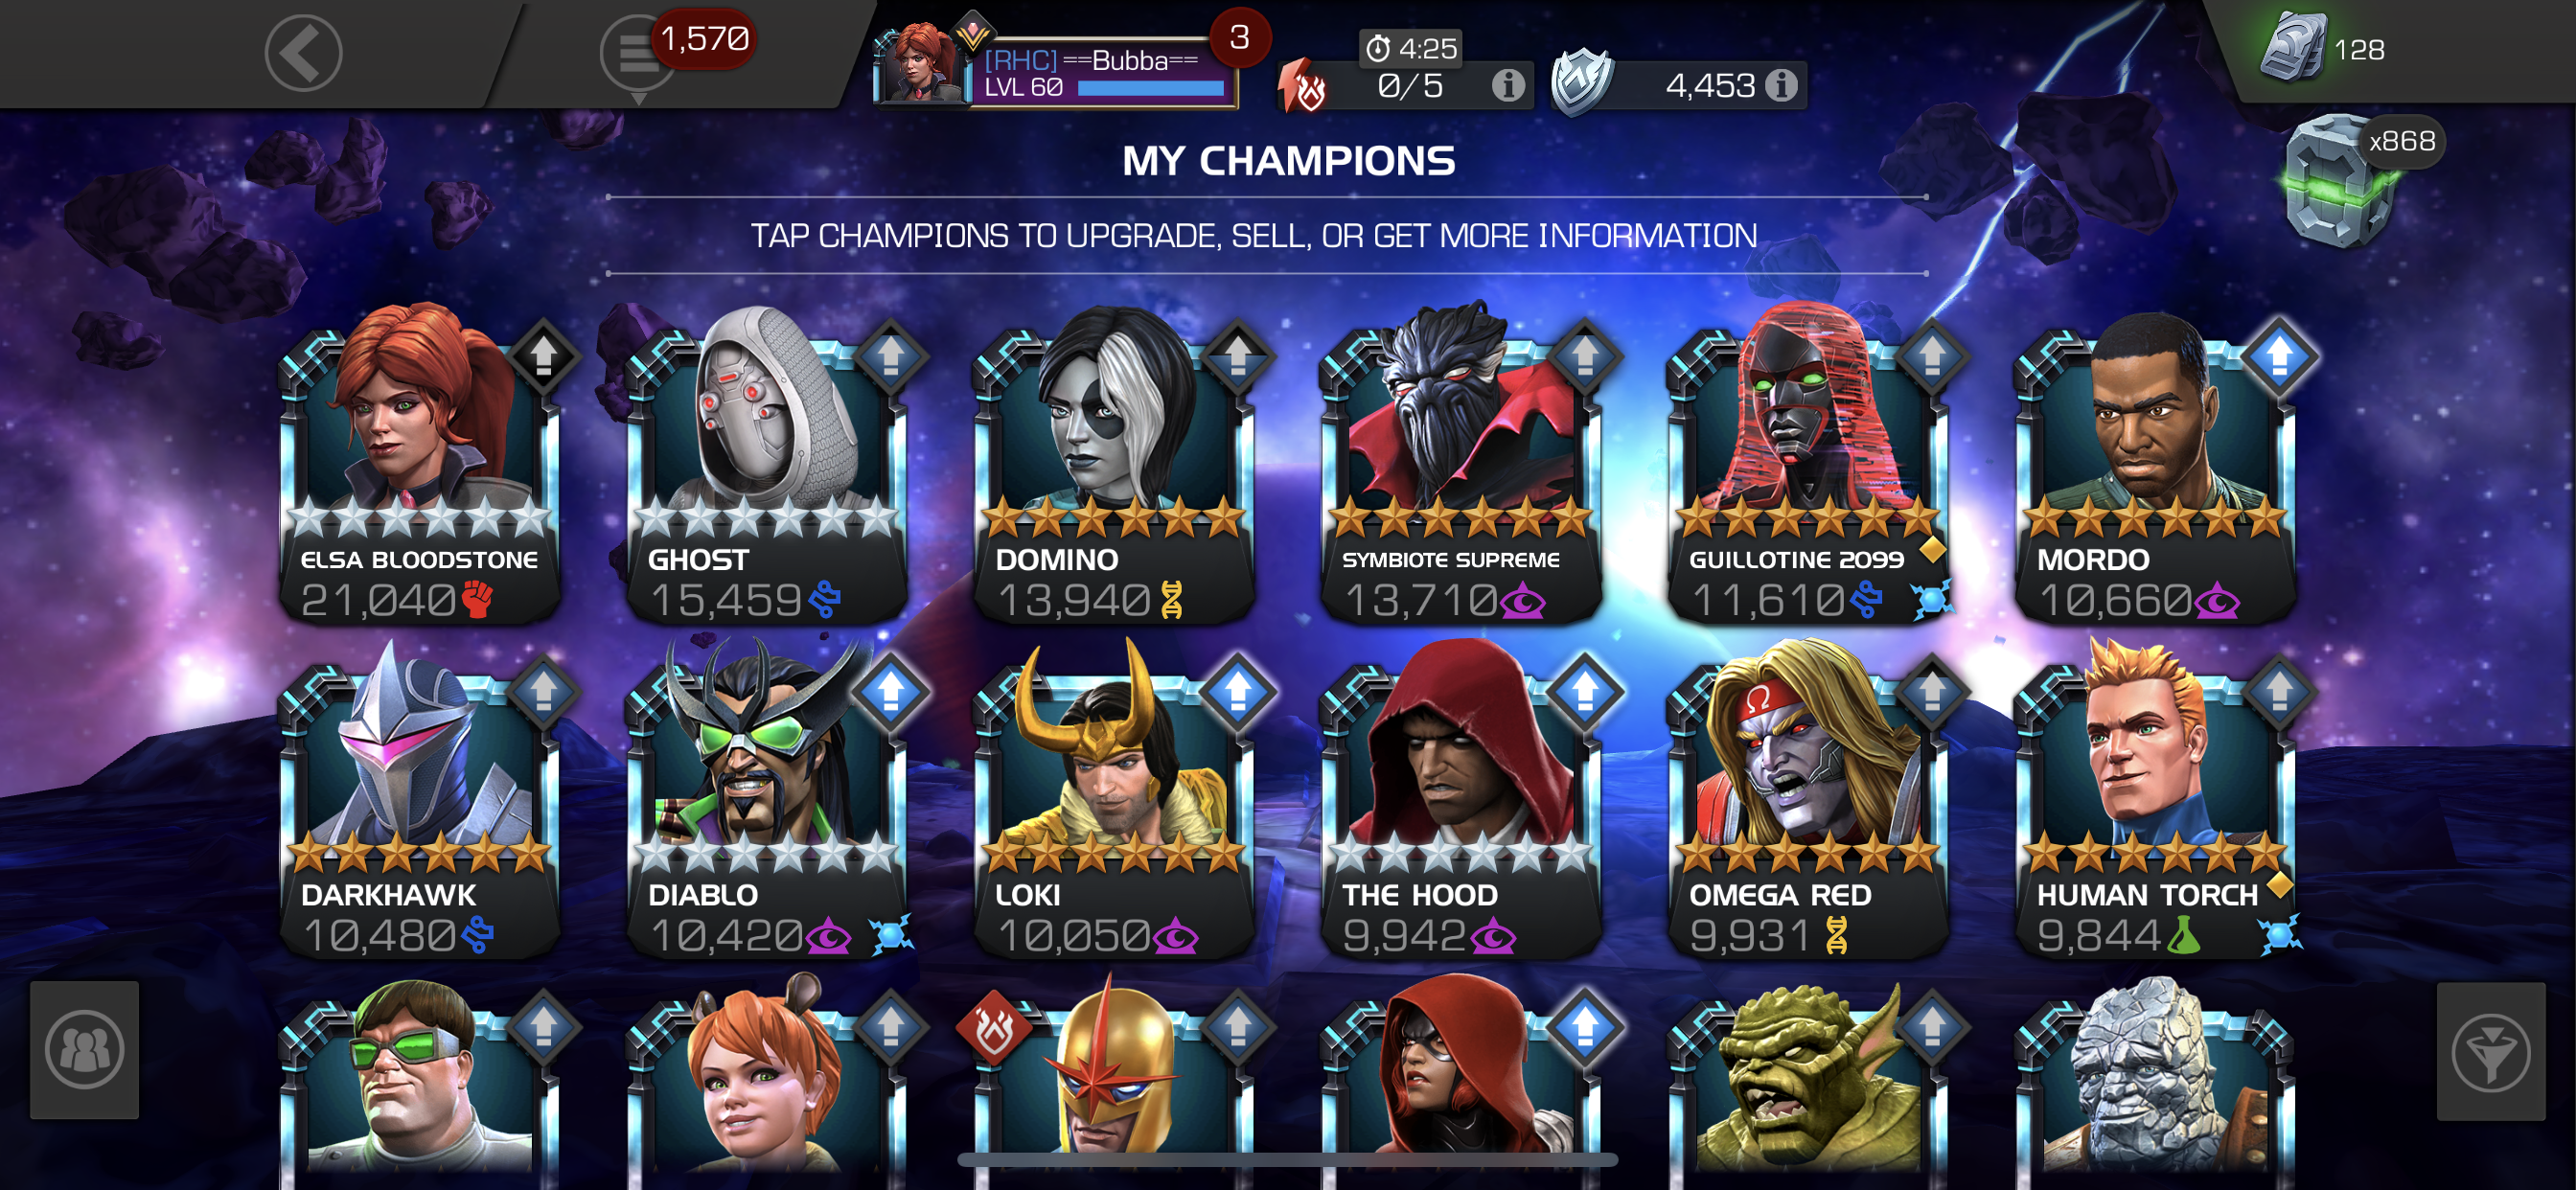 My Current 6 Champions From First To Latest Page 5 Marvel Contest Of Champions Remember to stay gold, ponyboy.stay gold. contest of champions forum marvel contest of champions